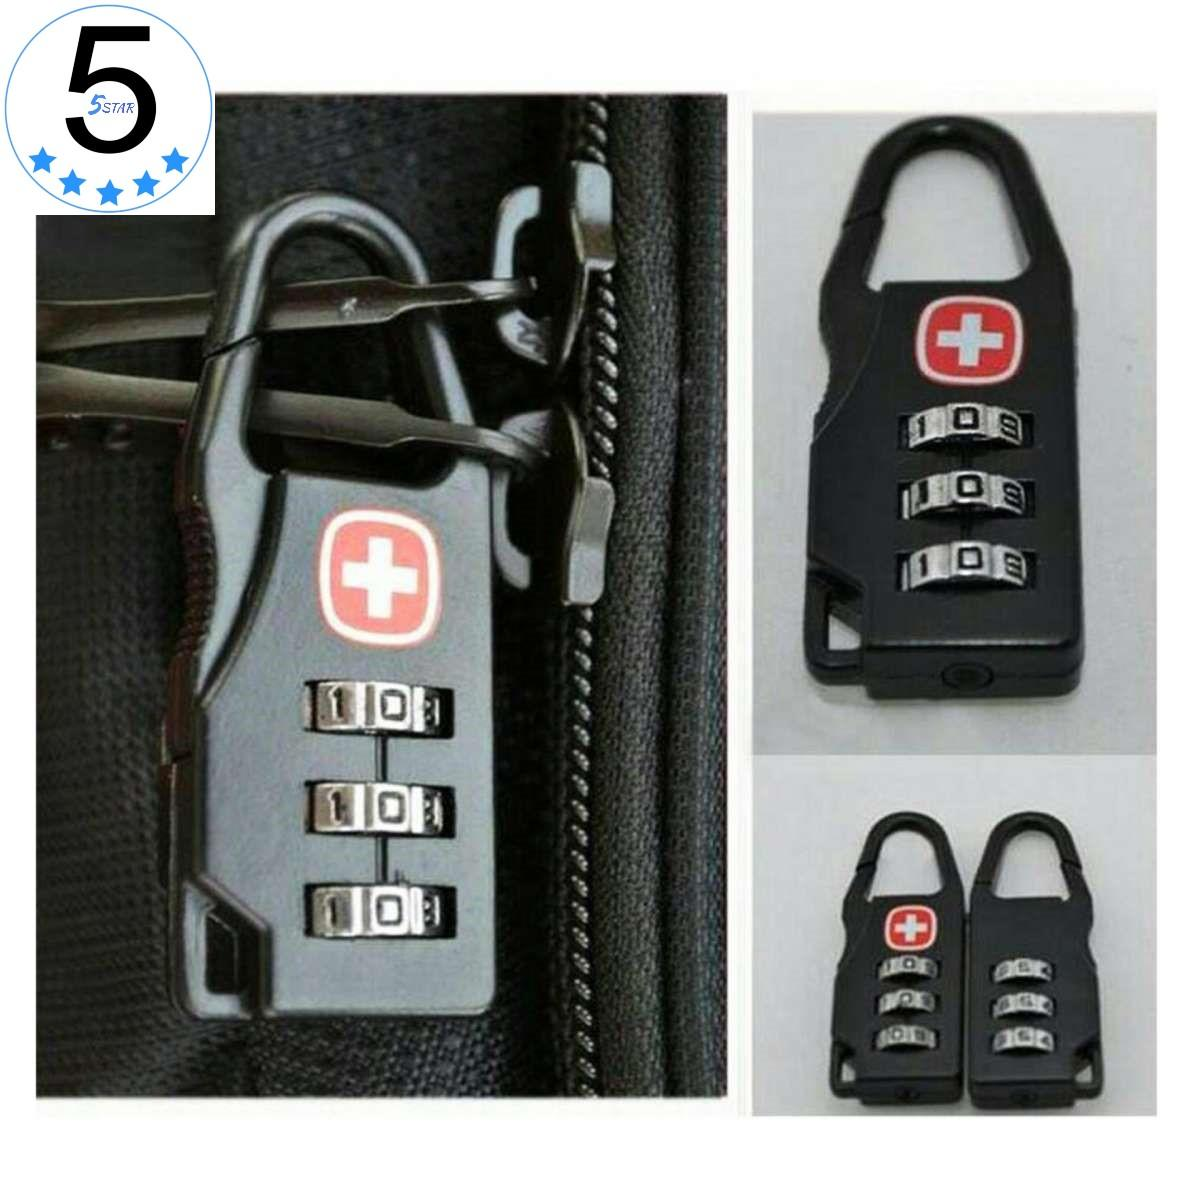 Swiss Gear Gembok Kunci Koper Padlock Travel Bag 5STAR - Swiss Gear Army Keychain Lock -